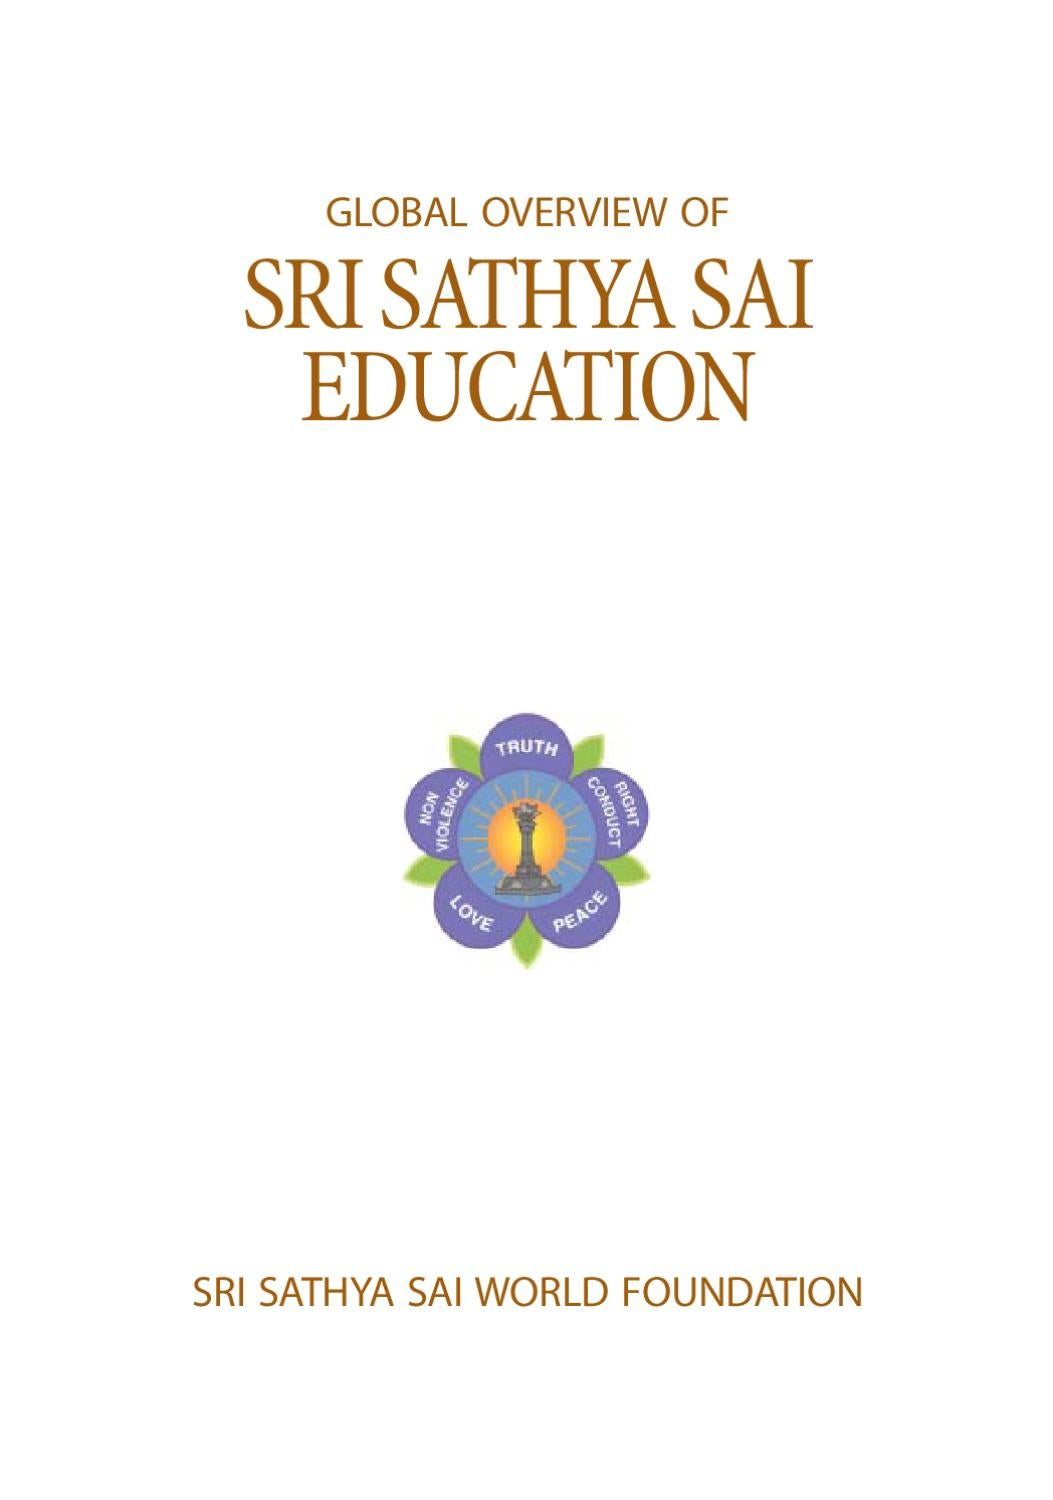 Global Overview of the Sathya Sai Education by Sai Council